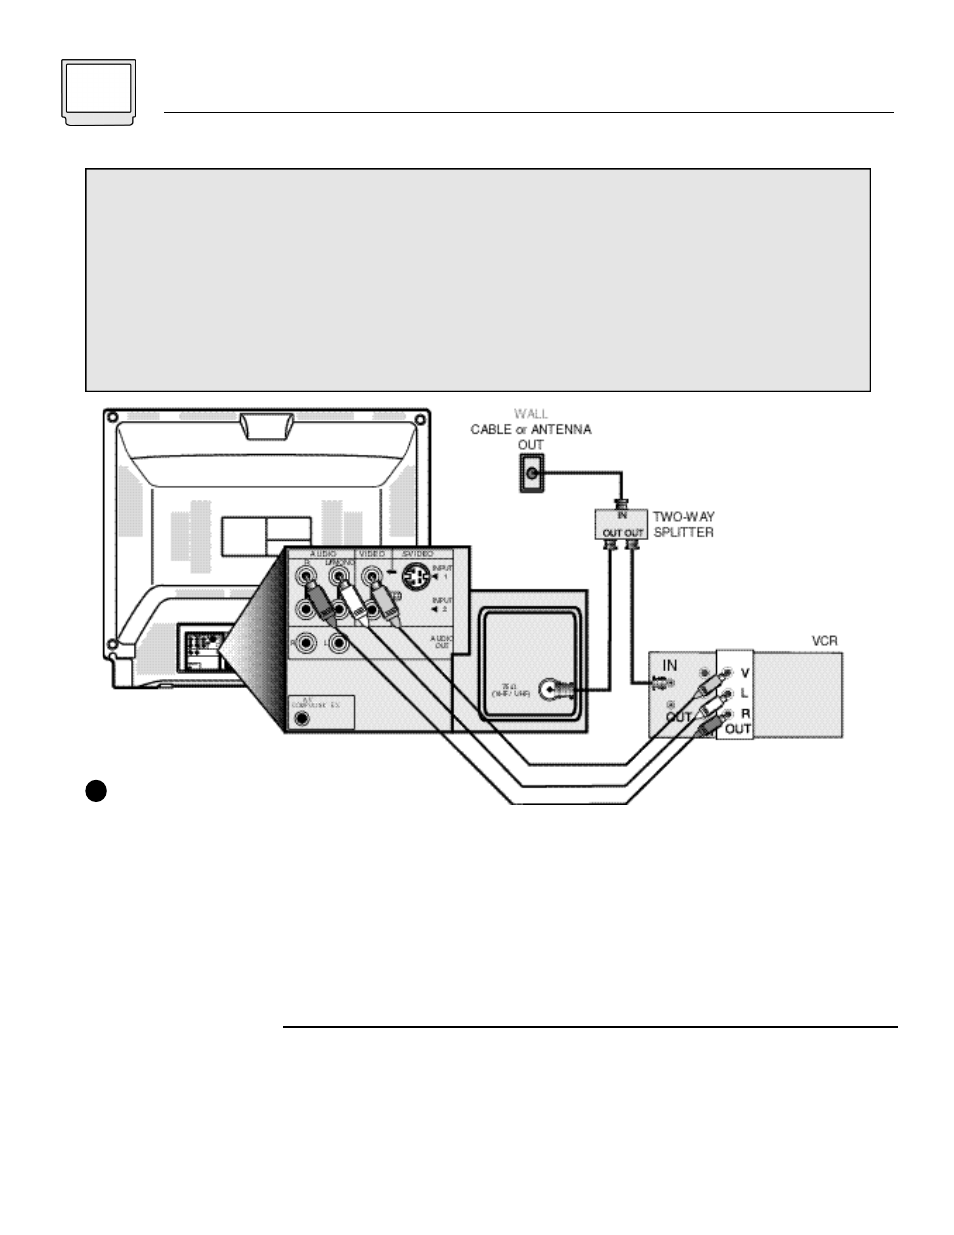 6connections, Cable and vcr connections | JVC AV 32120 User Manual ...